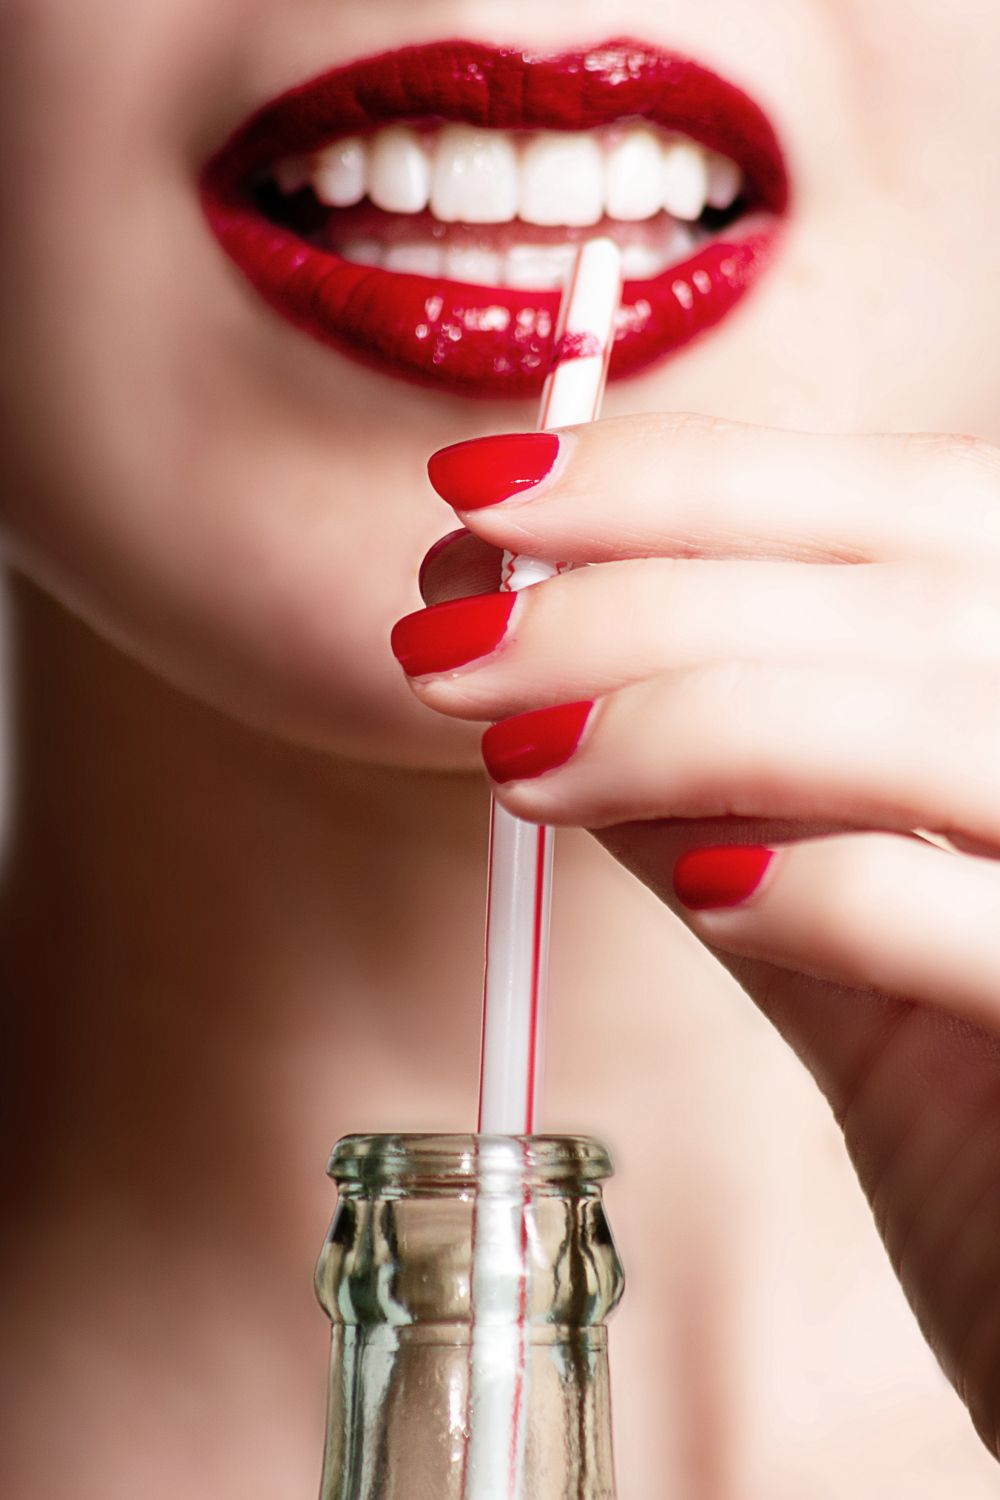 Ask an Expert How Do I Keep Lipstick Off My Teeth? (With